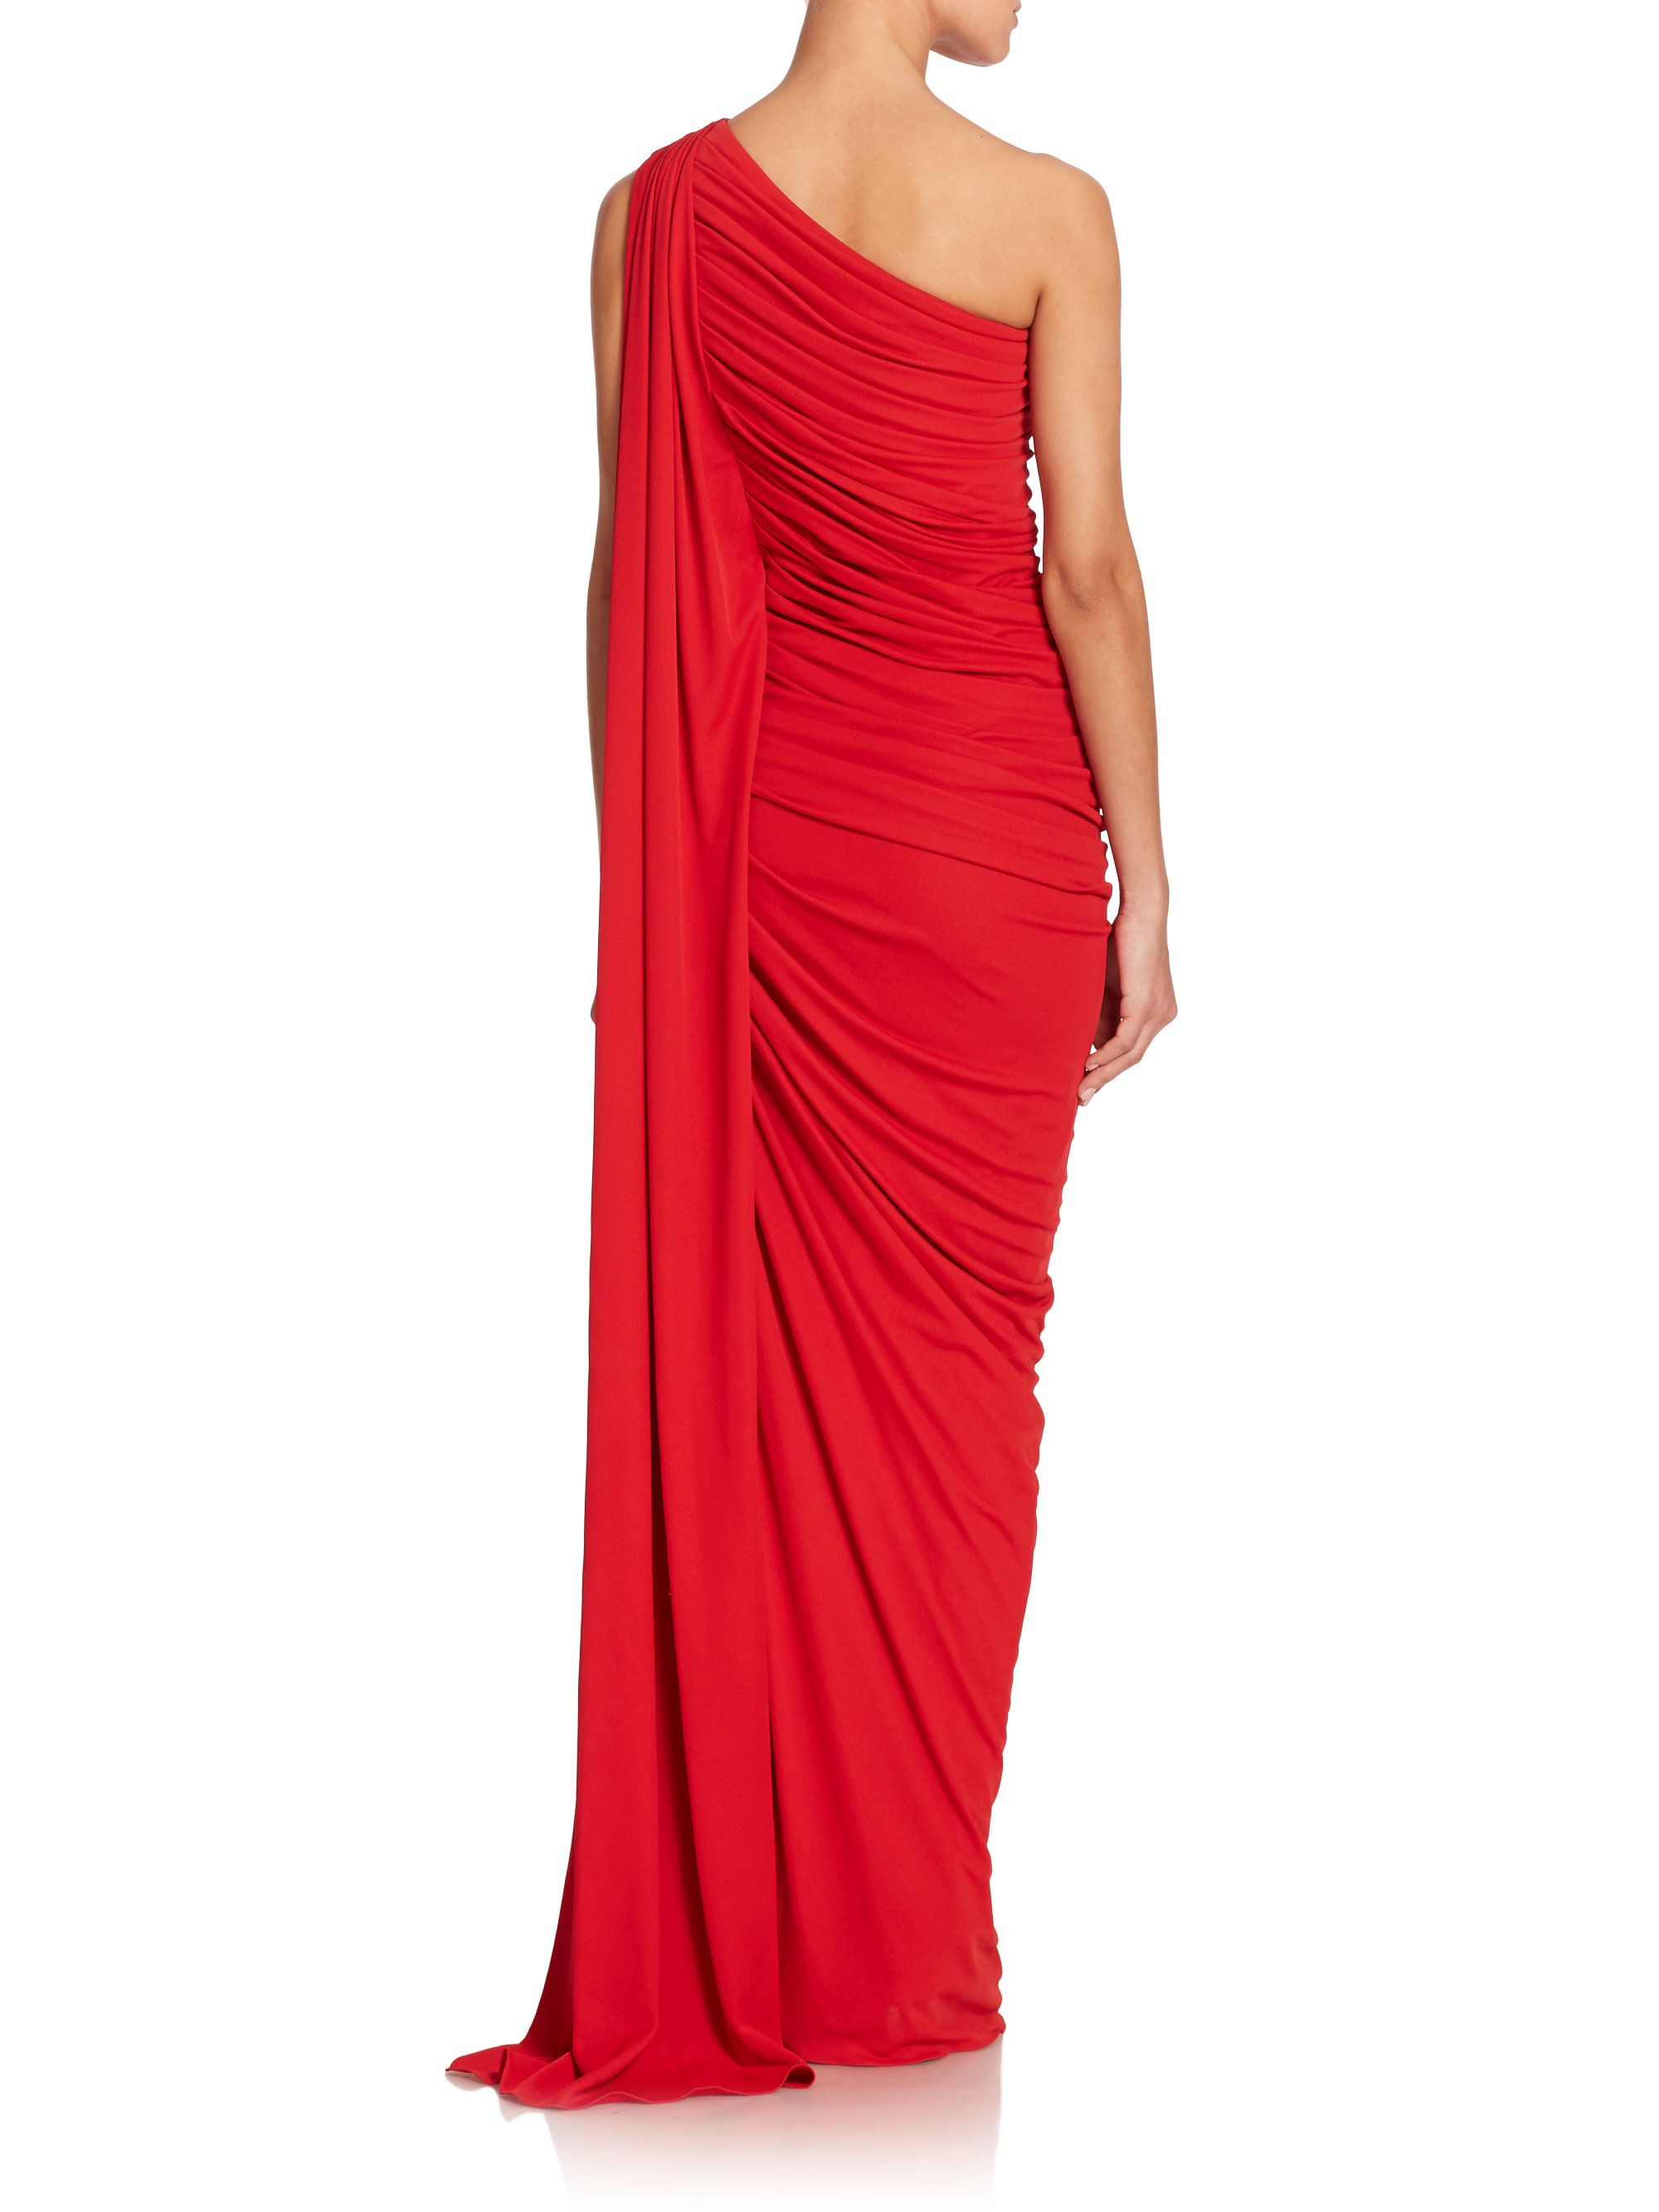 Michael Kors One-Shoulder Jersey Gown in Red (crimson)   Lyst ...